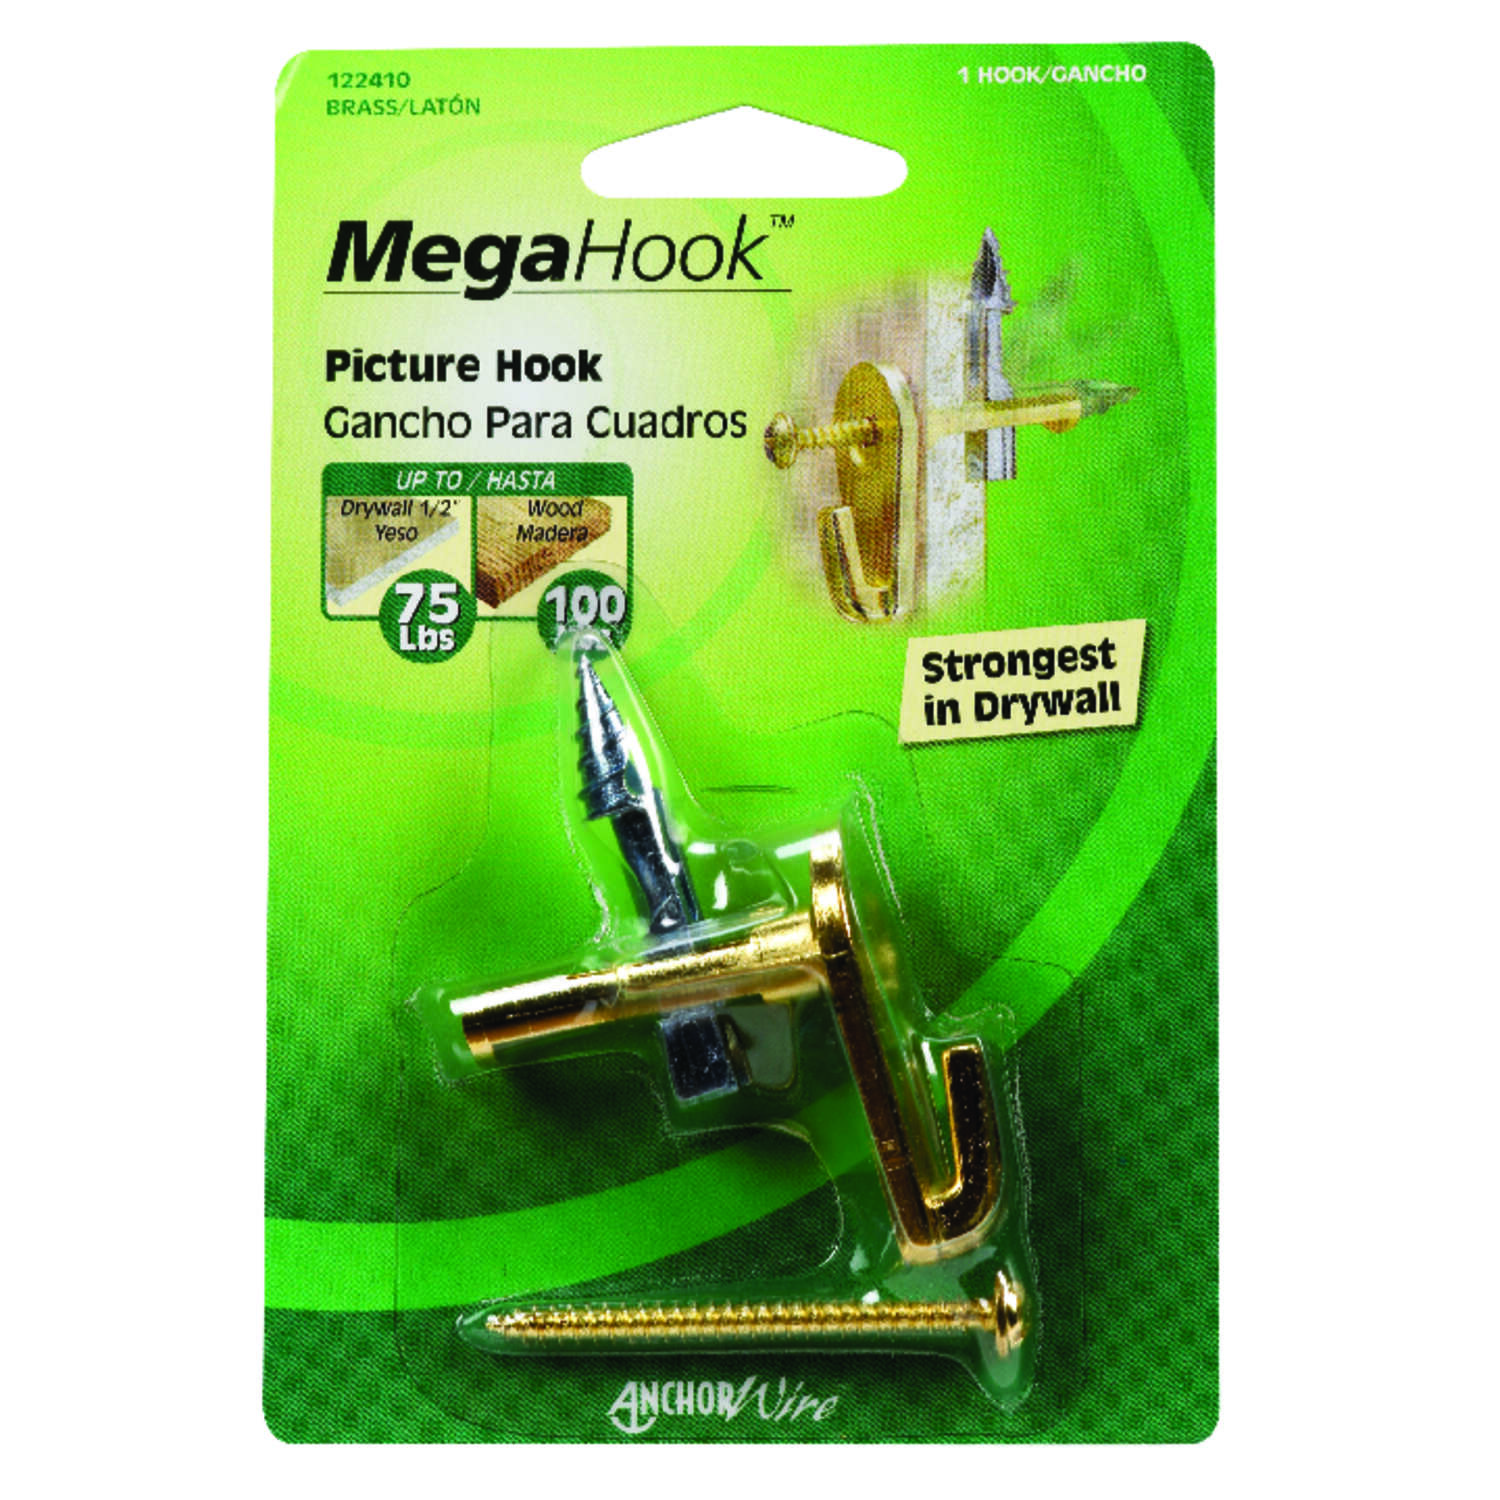 HILLMAN  MegaHook  Brass-Plated  Heavy Duty  Brass  100 lb. 1 pk Picture Hook